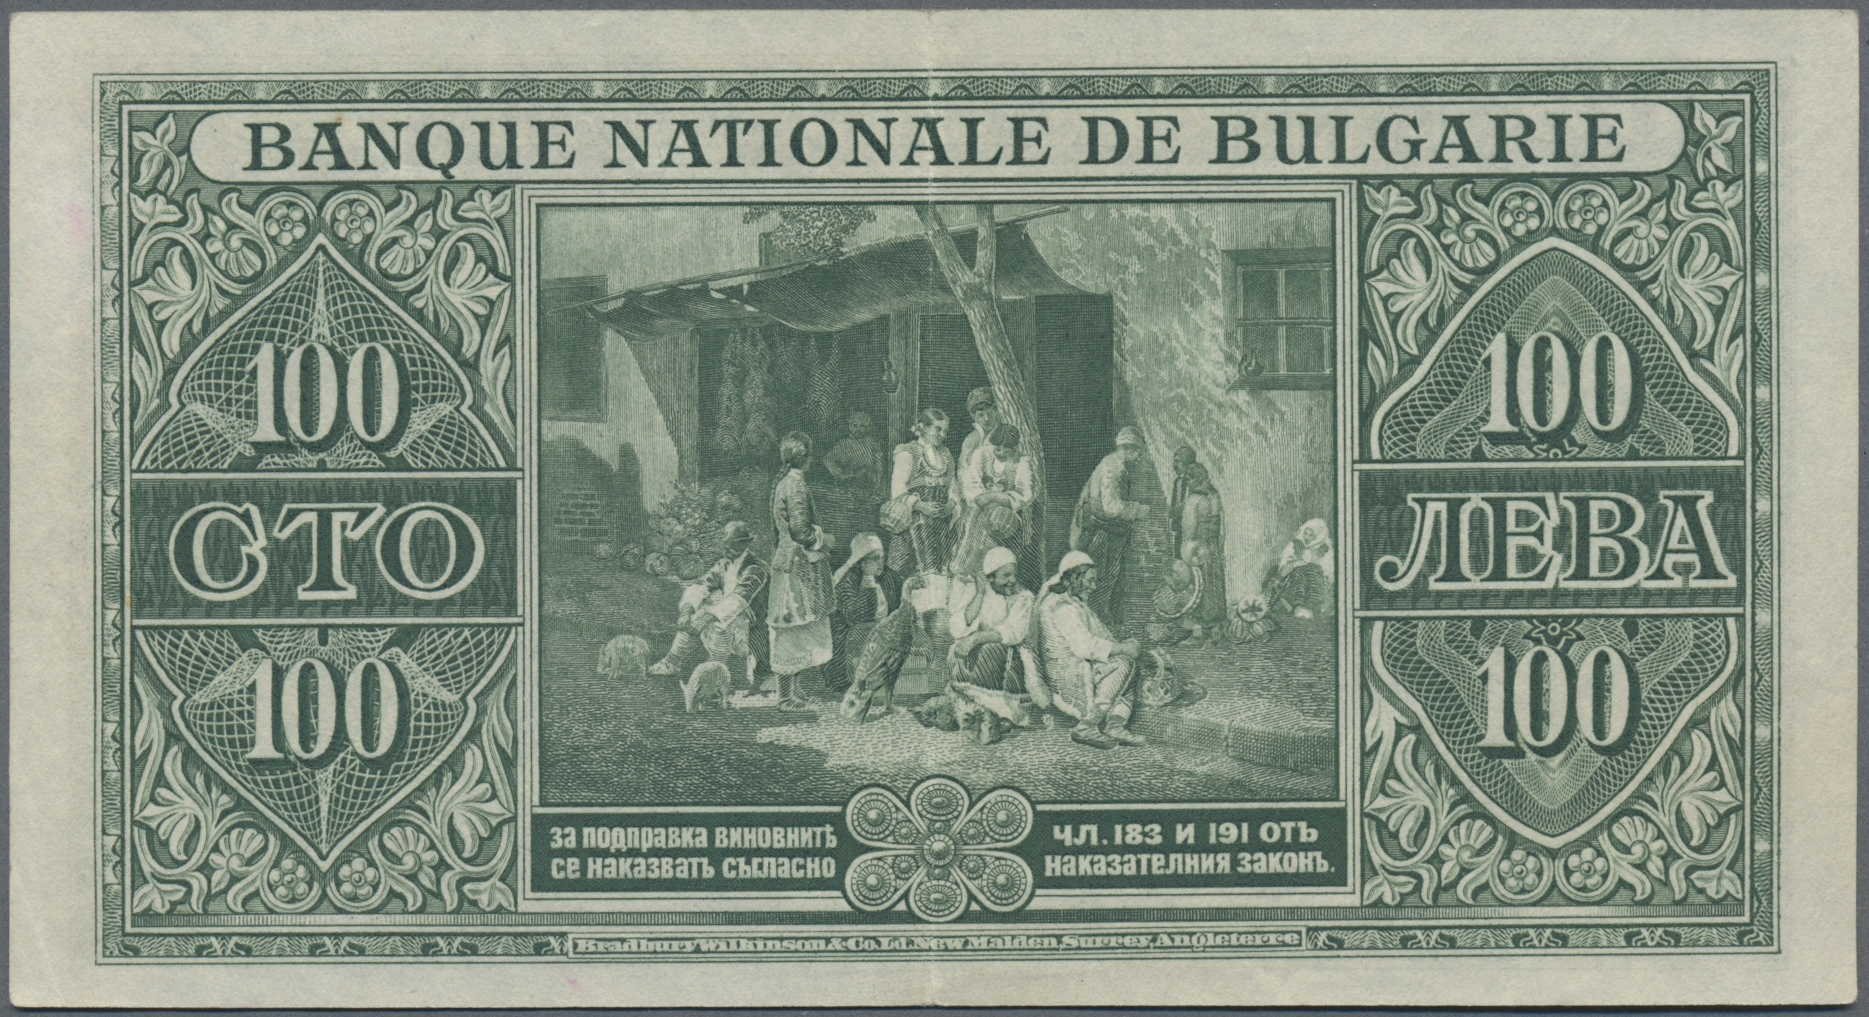 Lot 00226 - Bulgaria / Bulgarien | Banknoten  -  Auktionshaus Christoph Gärtner GmbH & Co. KG Sale #46 The Banknotes Worldwide section of the 46th Christoph Gärtner Auction